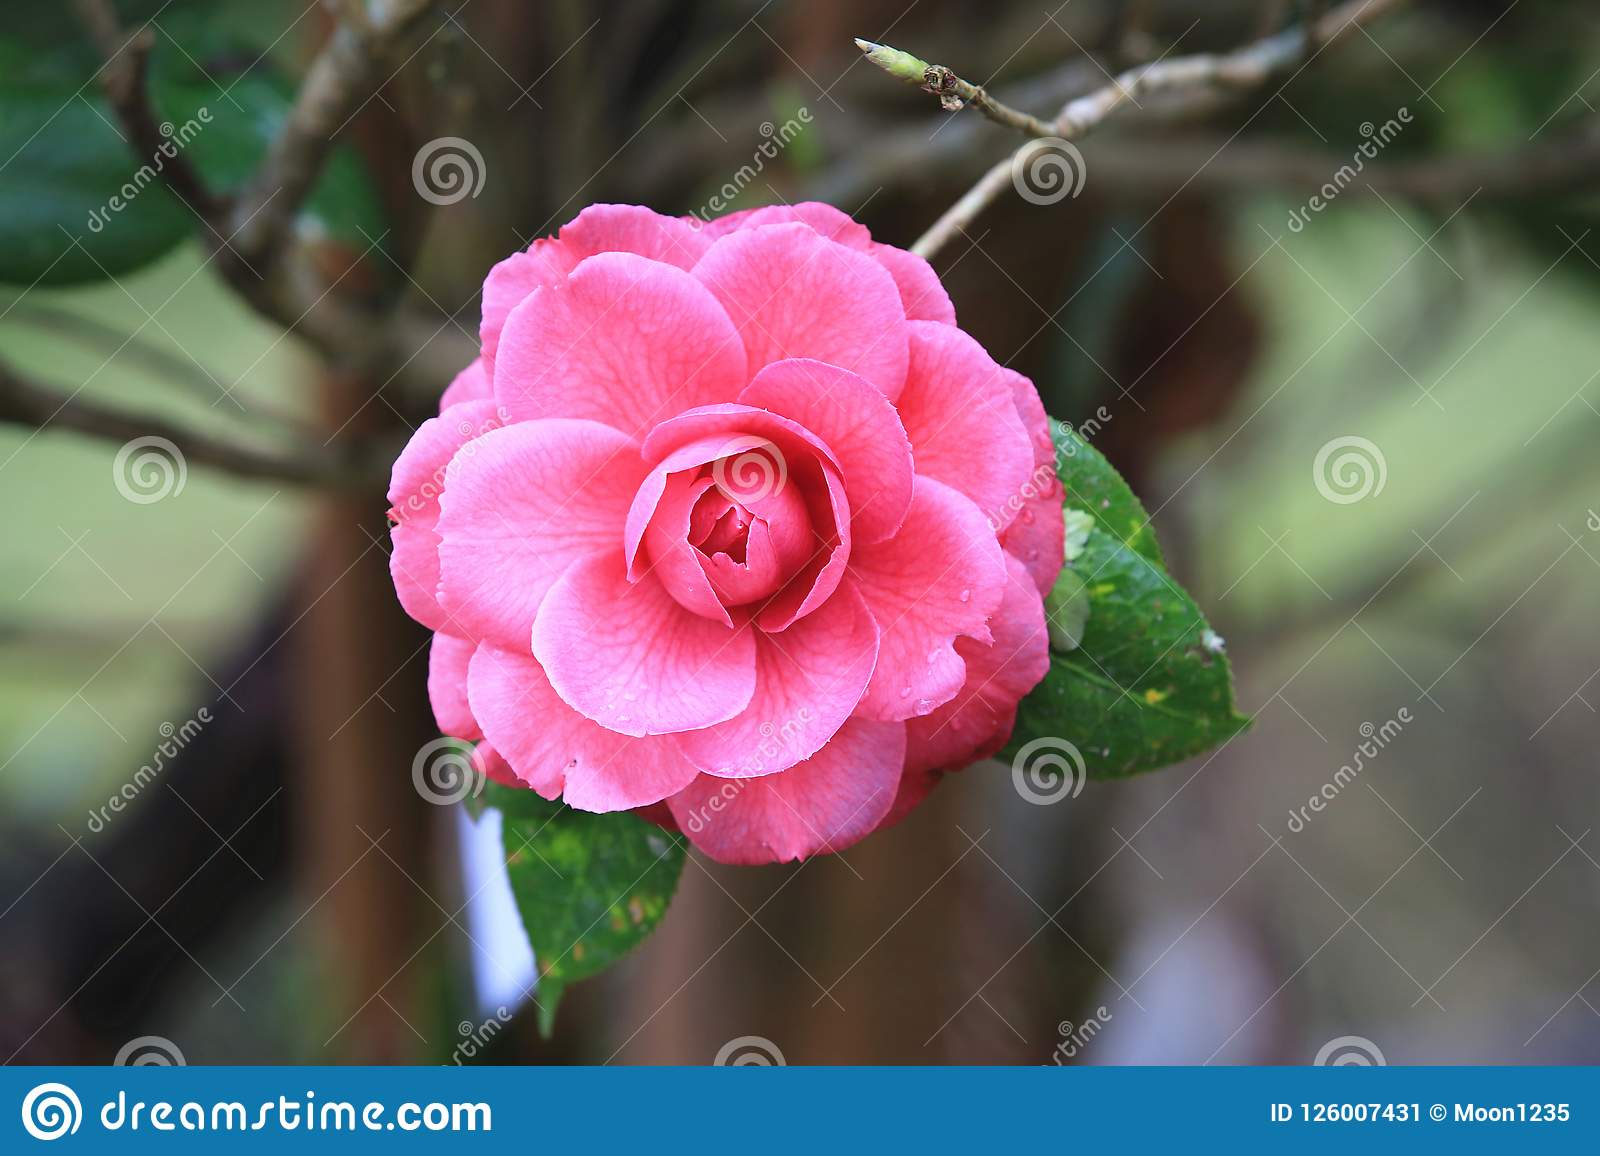 Pink Camellia Flower With Raindrop Stock Image Image Of Bloom